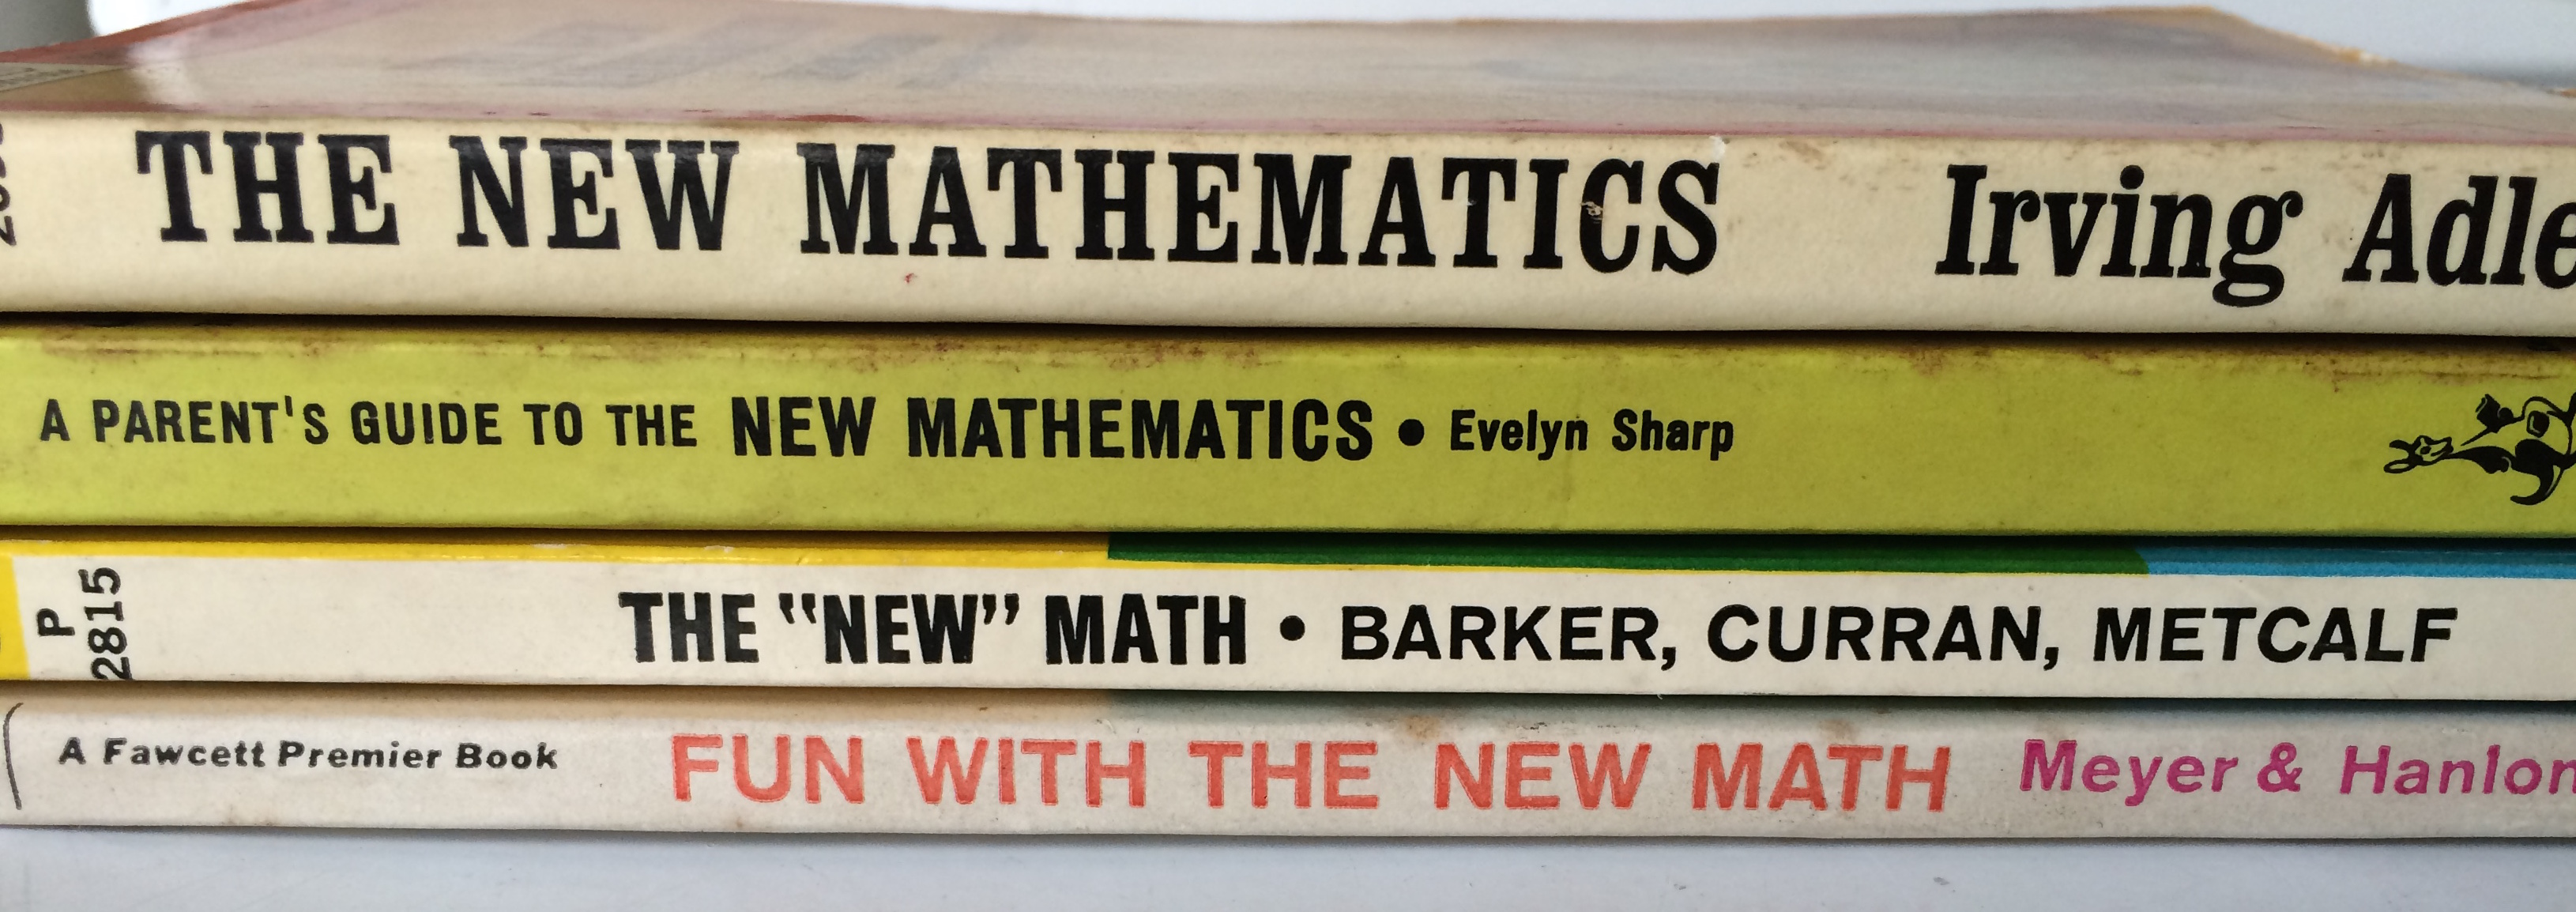 history of mathematics wikipedia